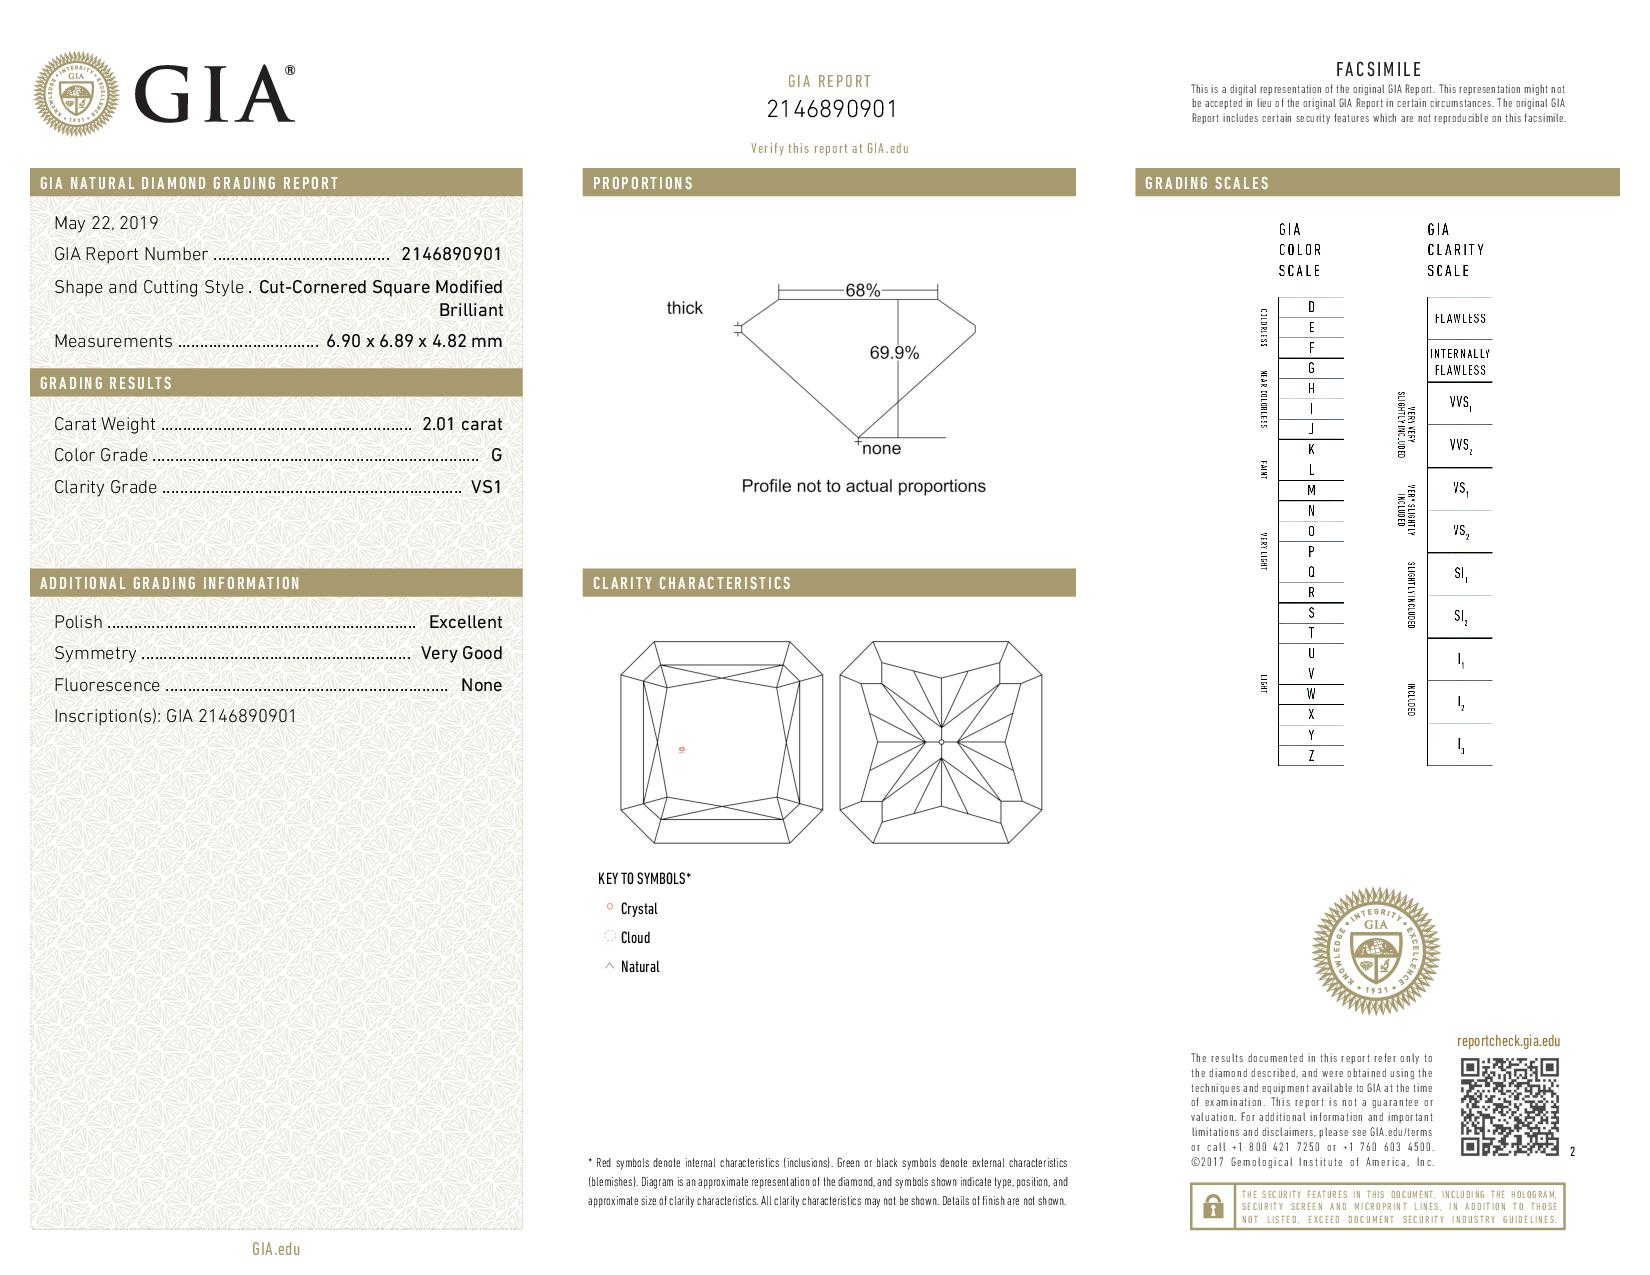 This is a 2.01 carat radiant shape, G color, VS1 clarity natural diamond accompanied by a GIA grading report.